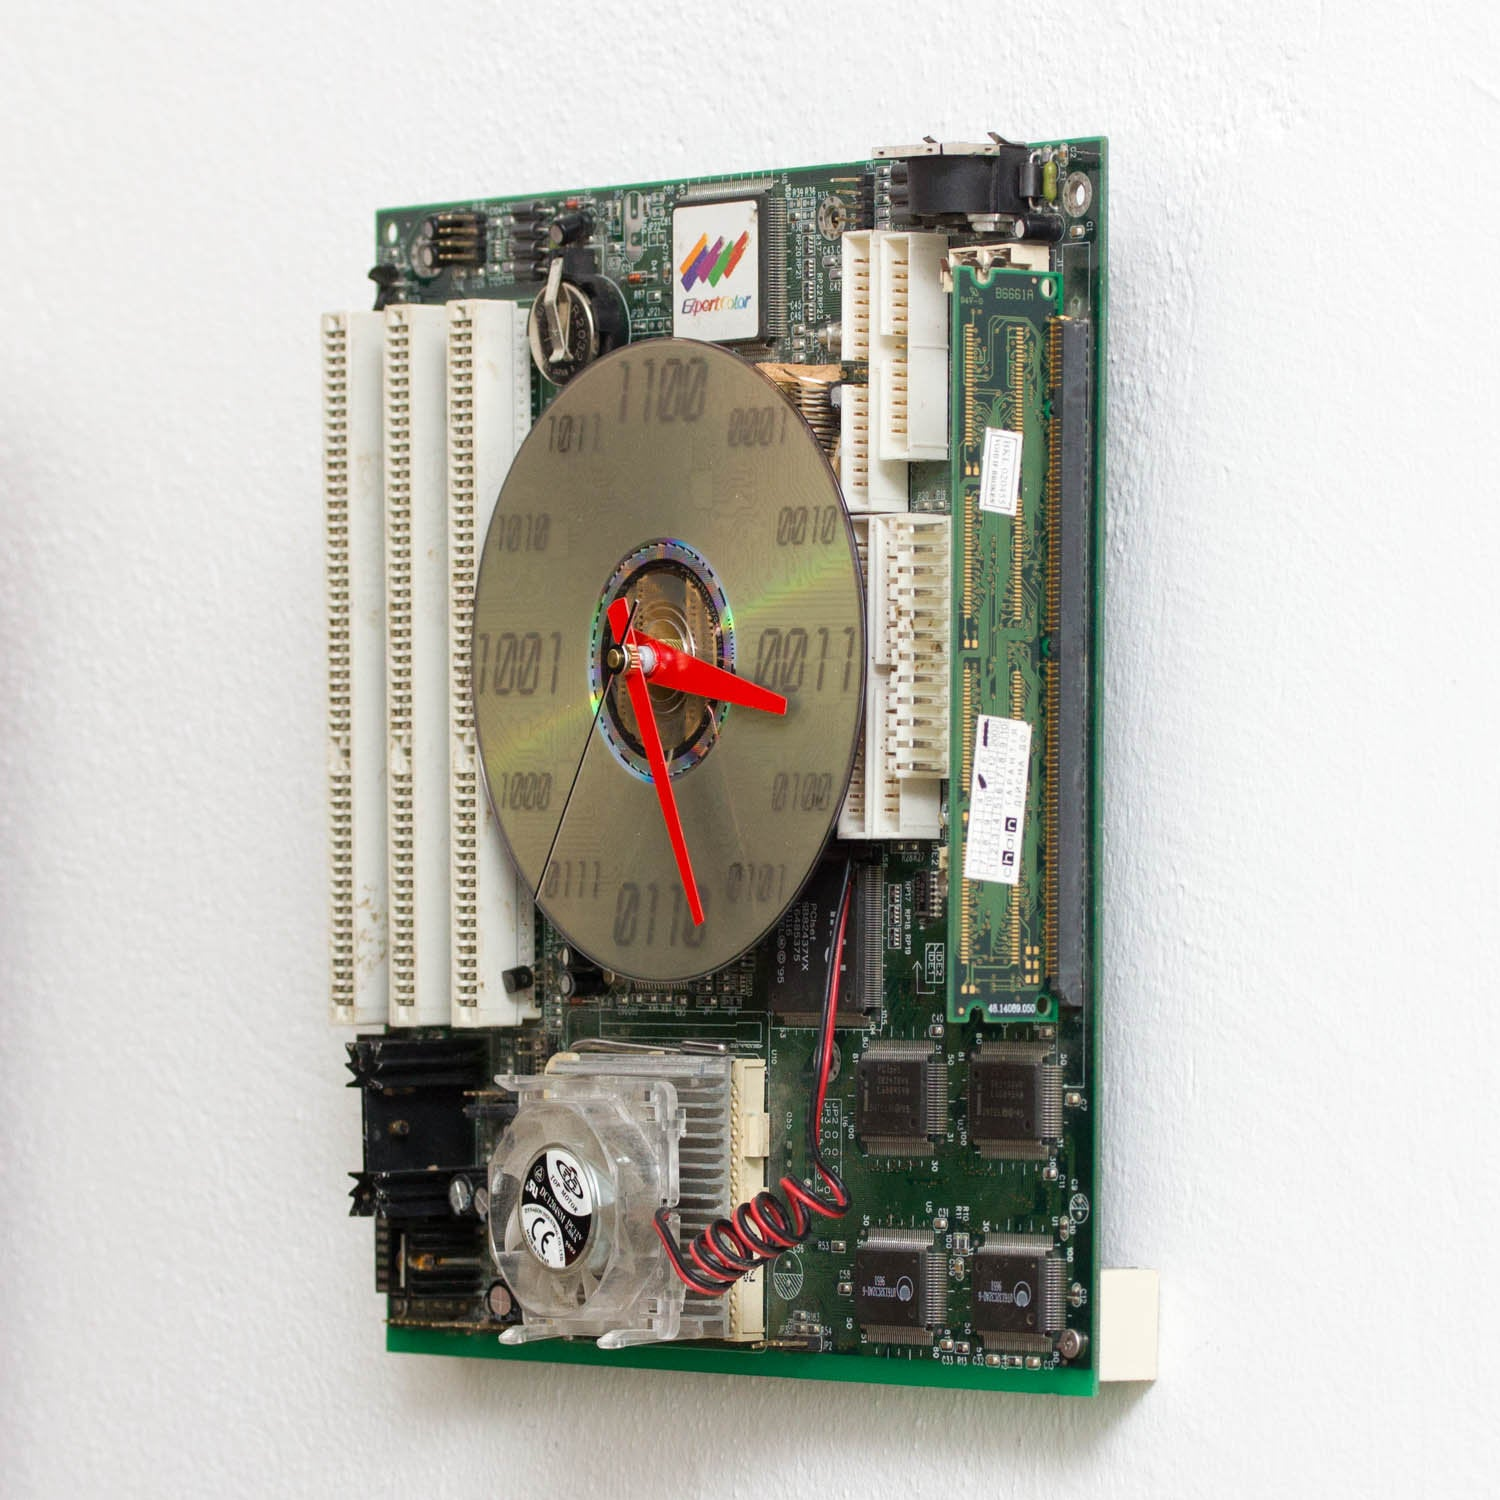 Geeky Wall Clock made of circuit board